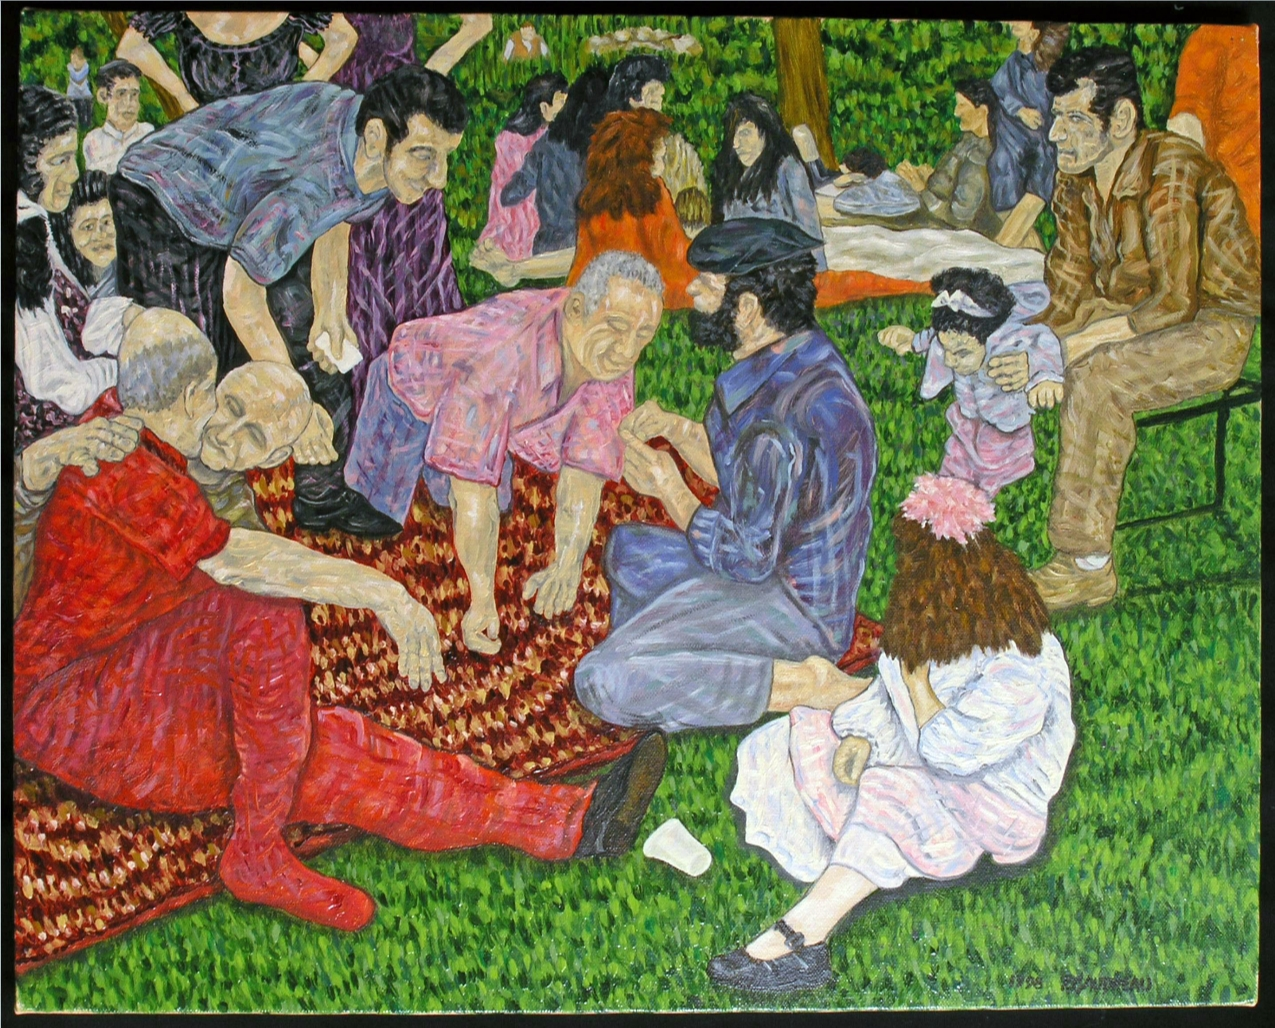 Holiday in the Park 1998 oil on canvas 16 x 20 inches